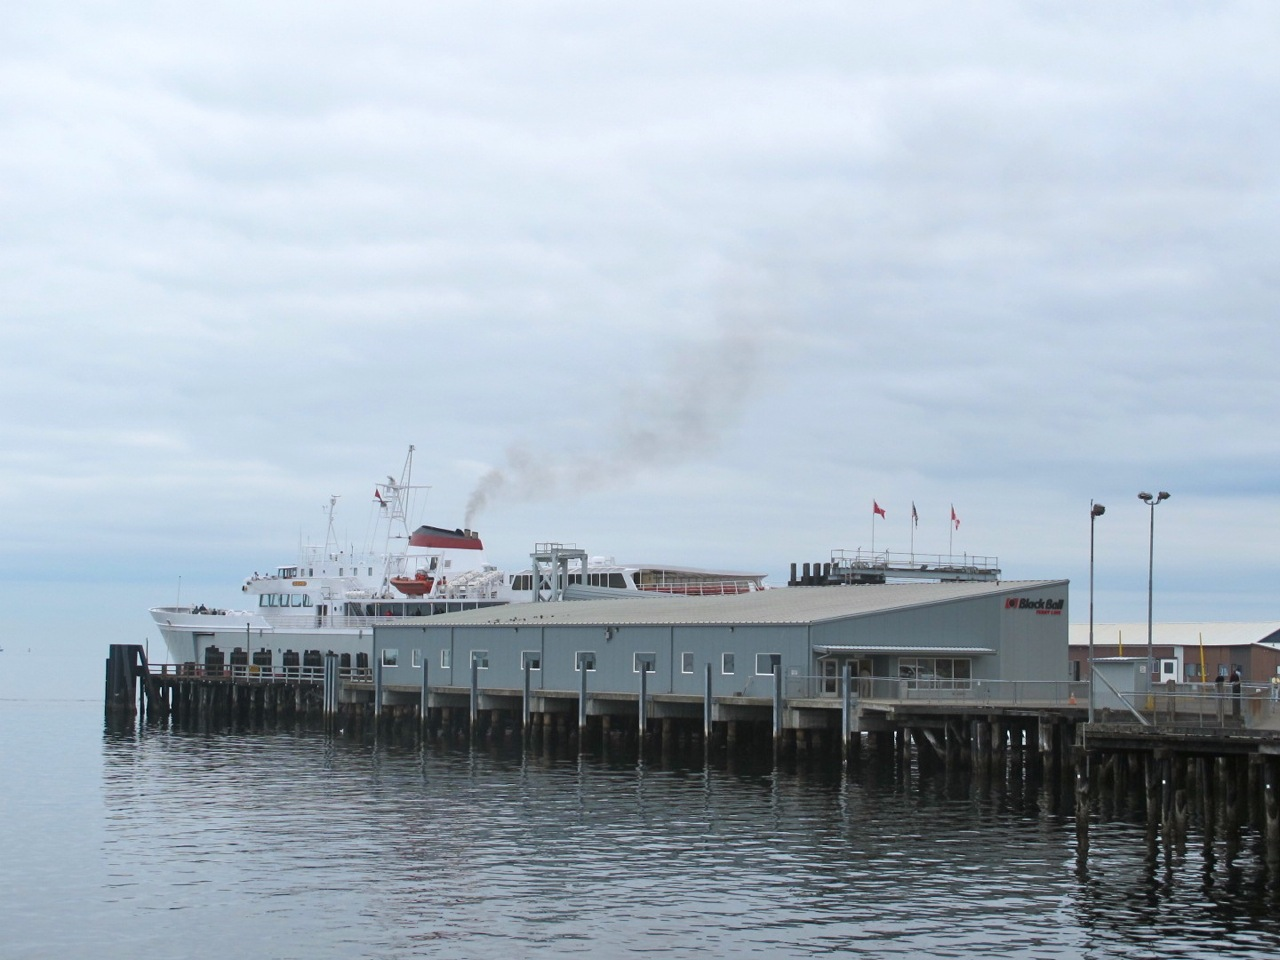 Win round trip sailing and hotel package to victoria bc on black win round trip sailing and hotel package to victoria bc on black ball ferry lines mv coho sciox Choice Image